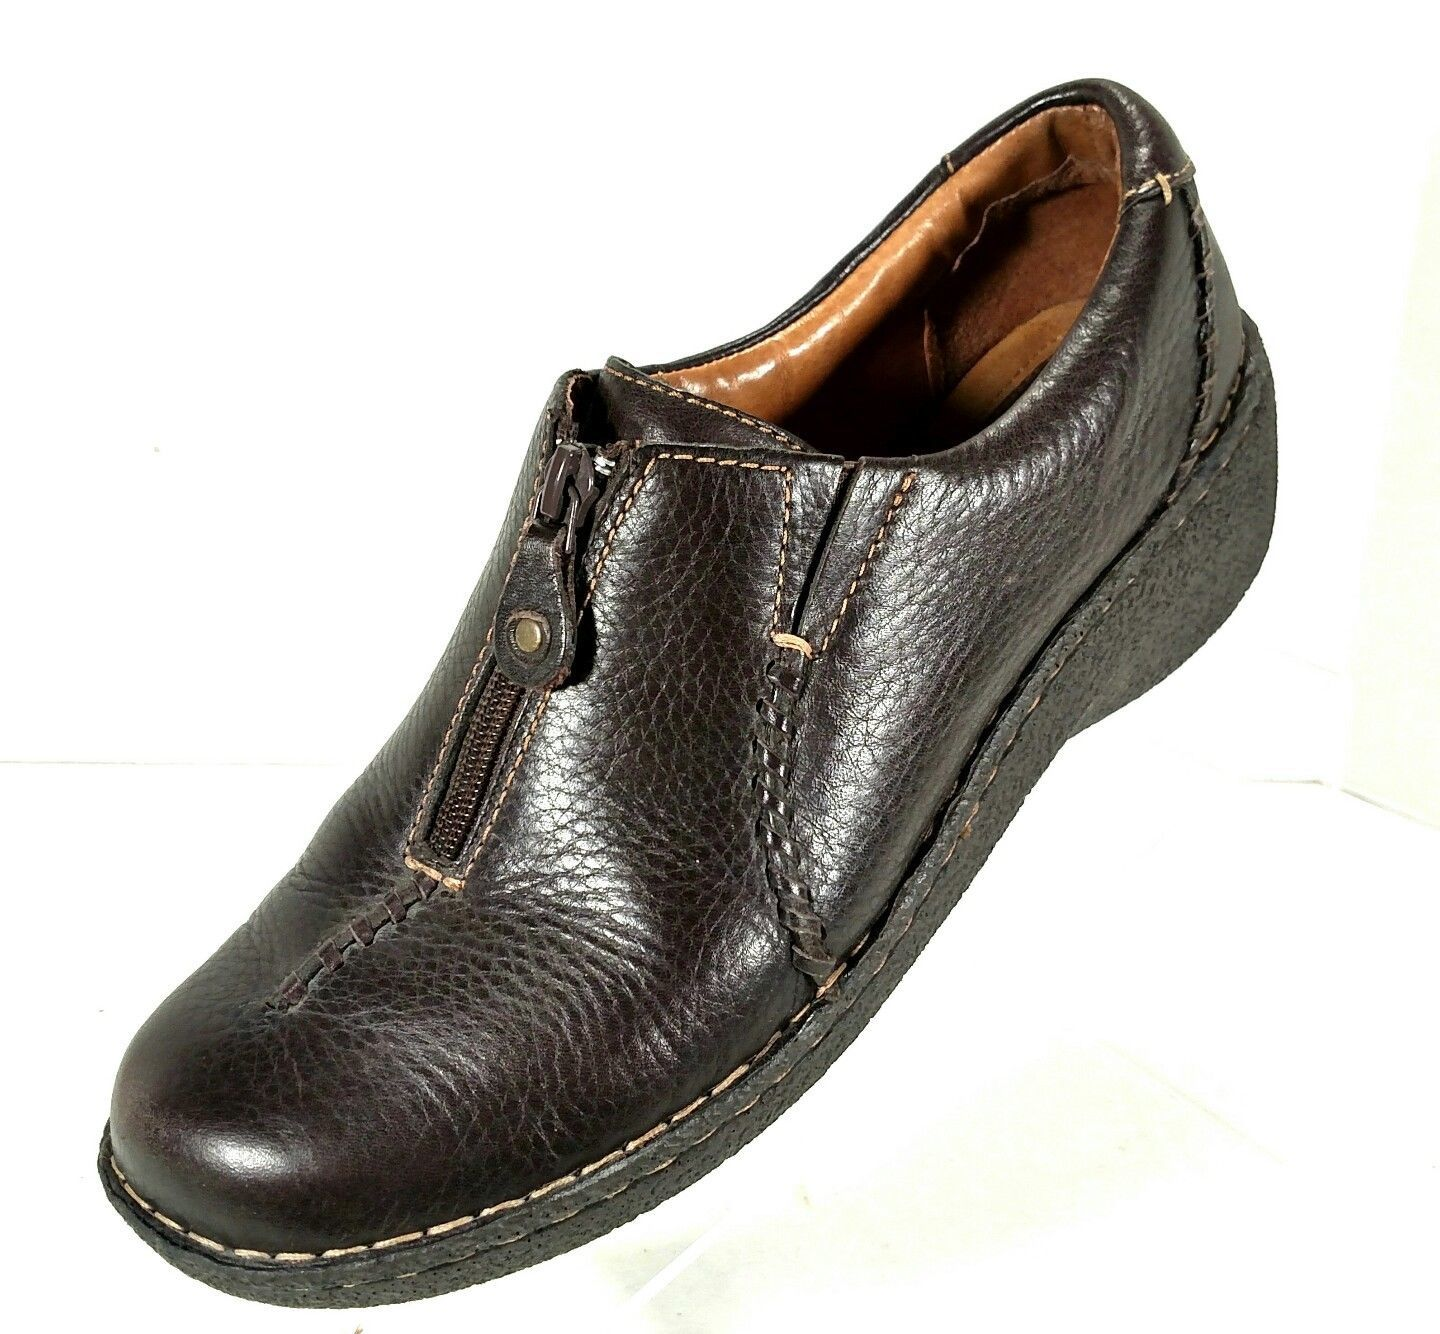 Clarks Artisan Inca Meg Slip On Shoes Loafers w/ Zipper Women's Size 9.5M Brown